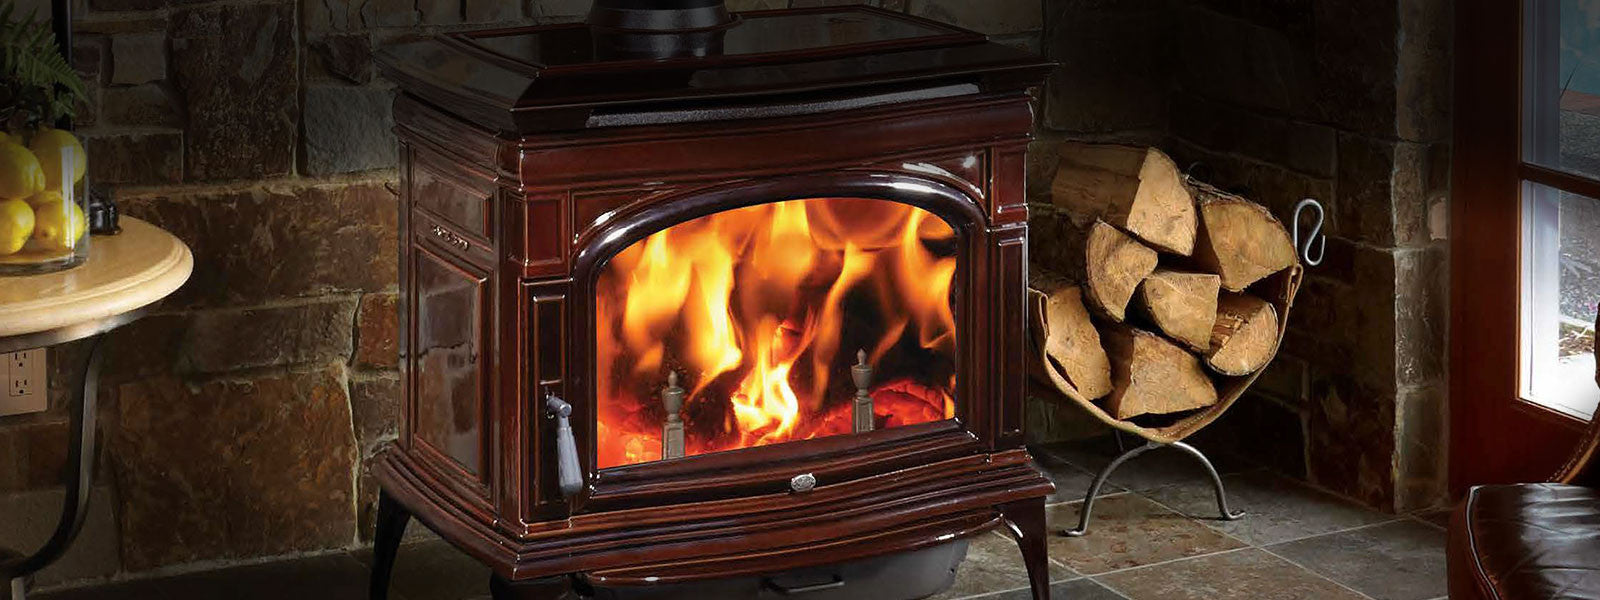 a fireplace store online fireplaces wood stoves chimney products